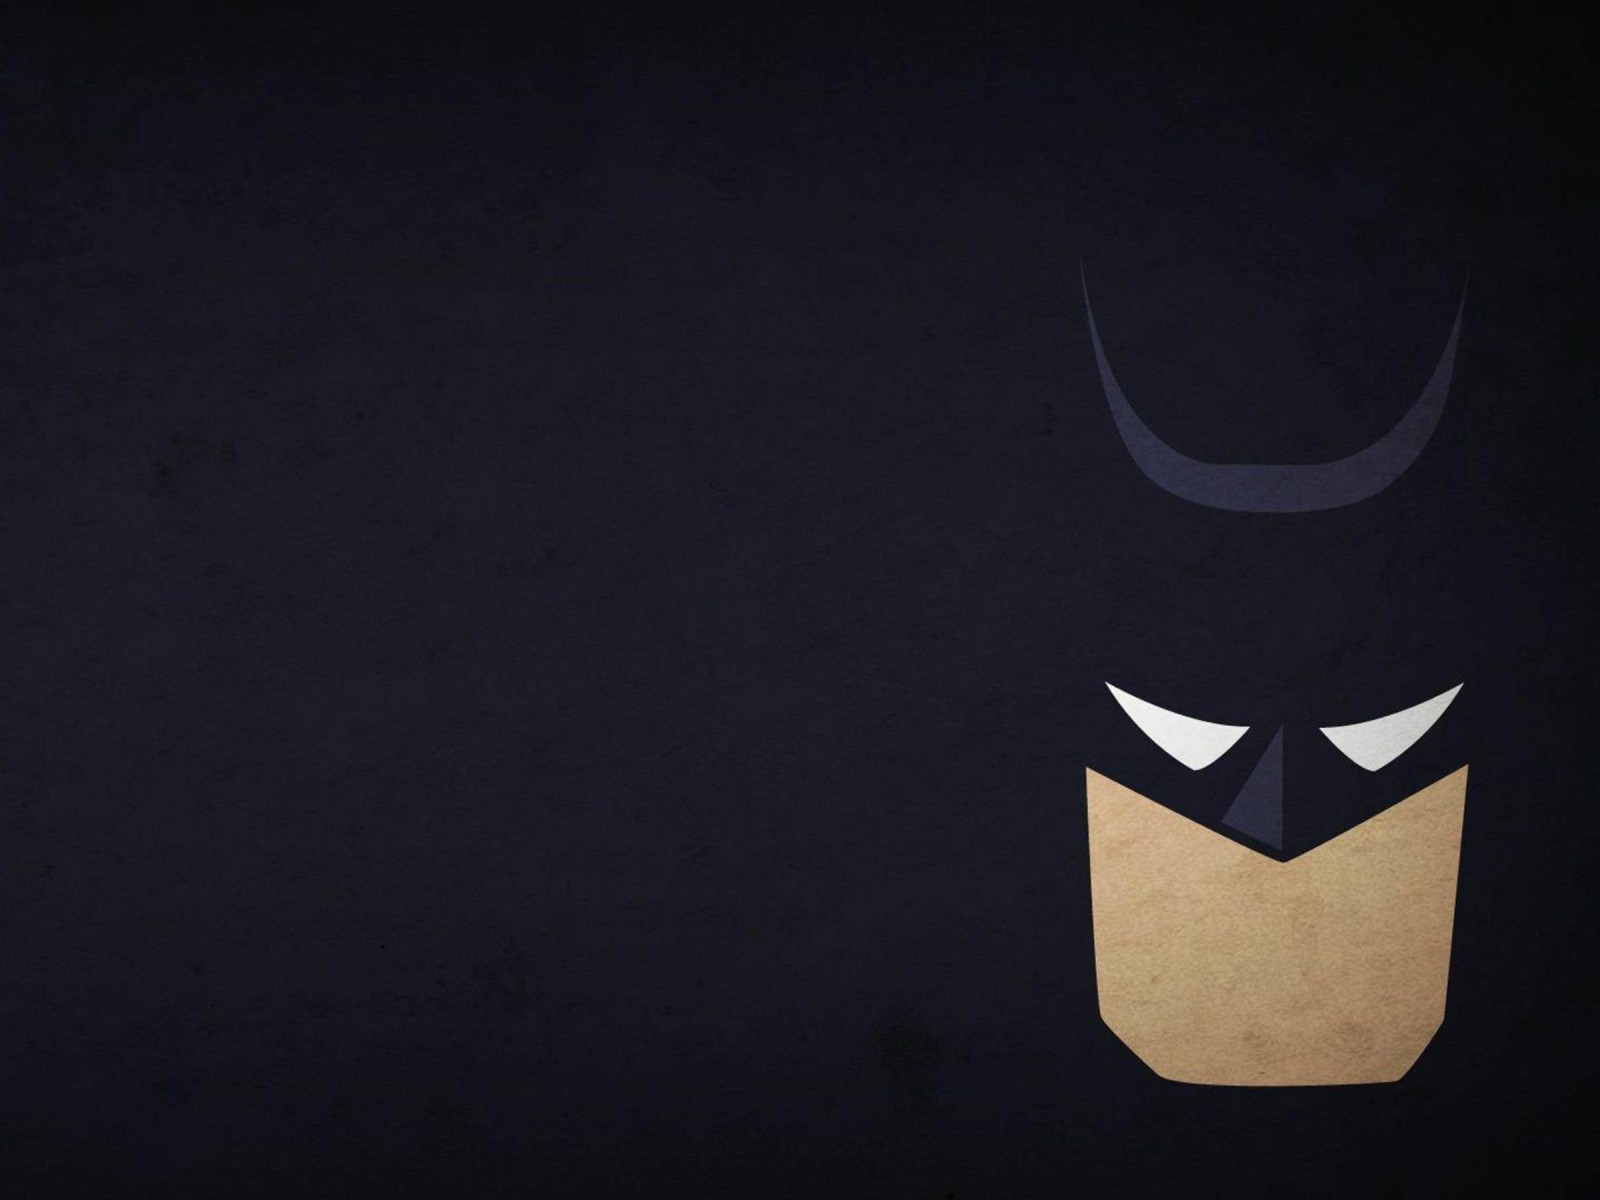 Batman Artwork Wallpaper for Desktop 1600x1200